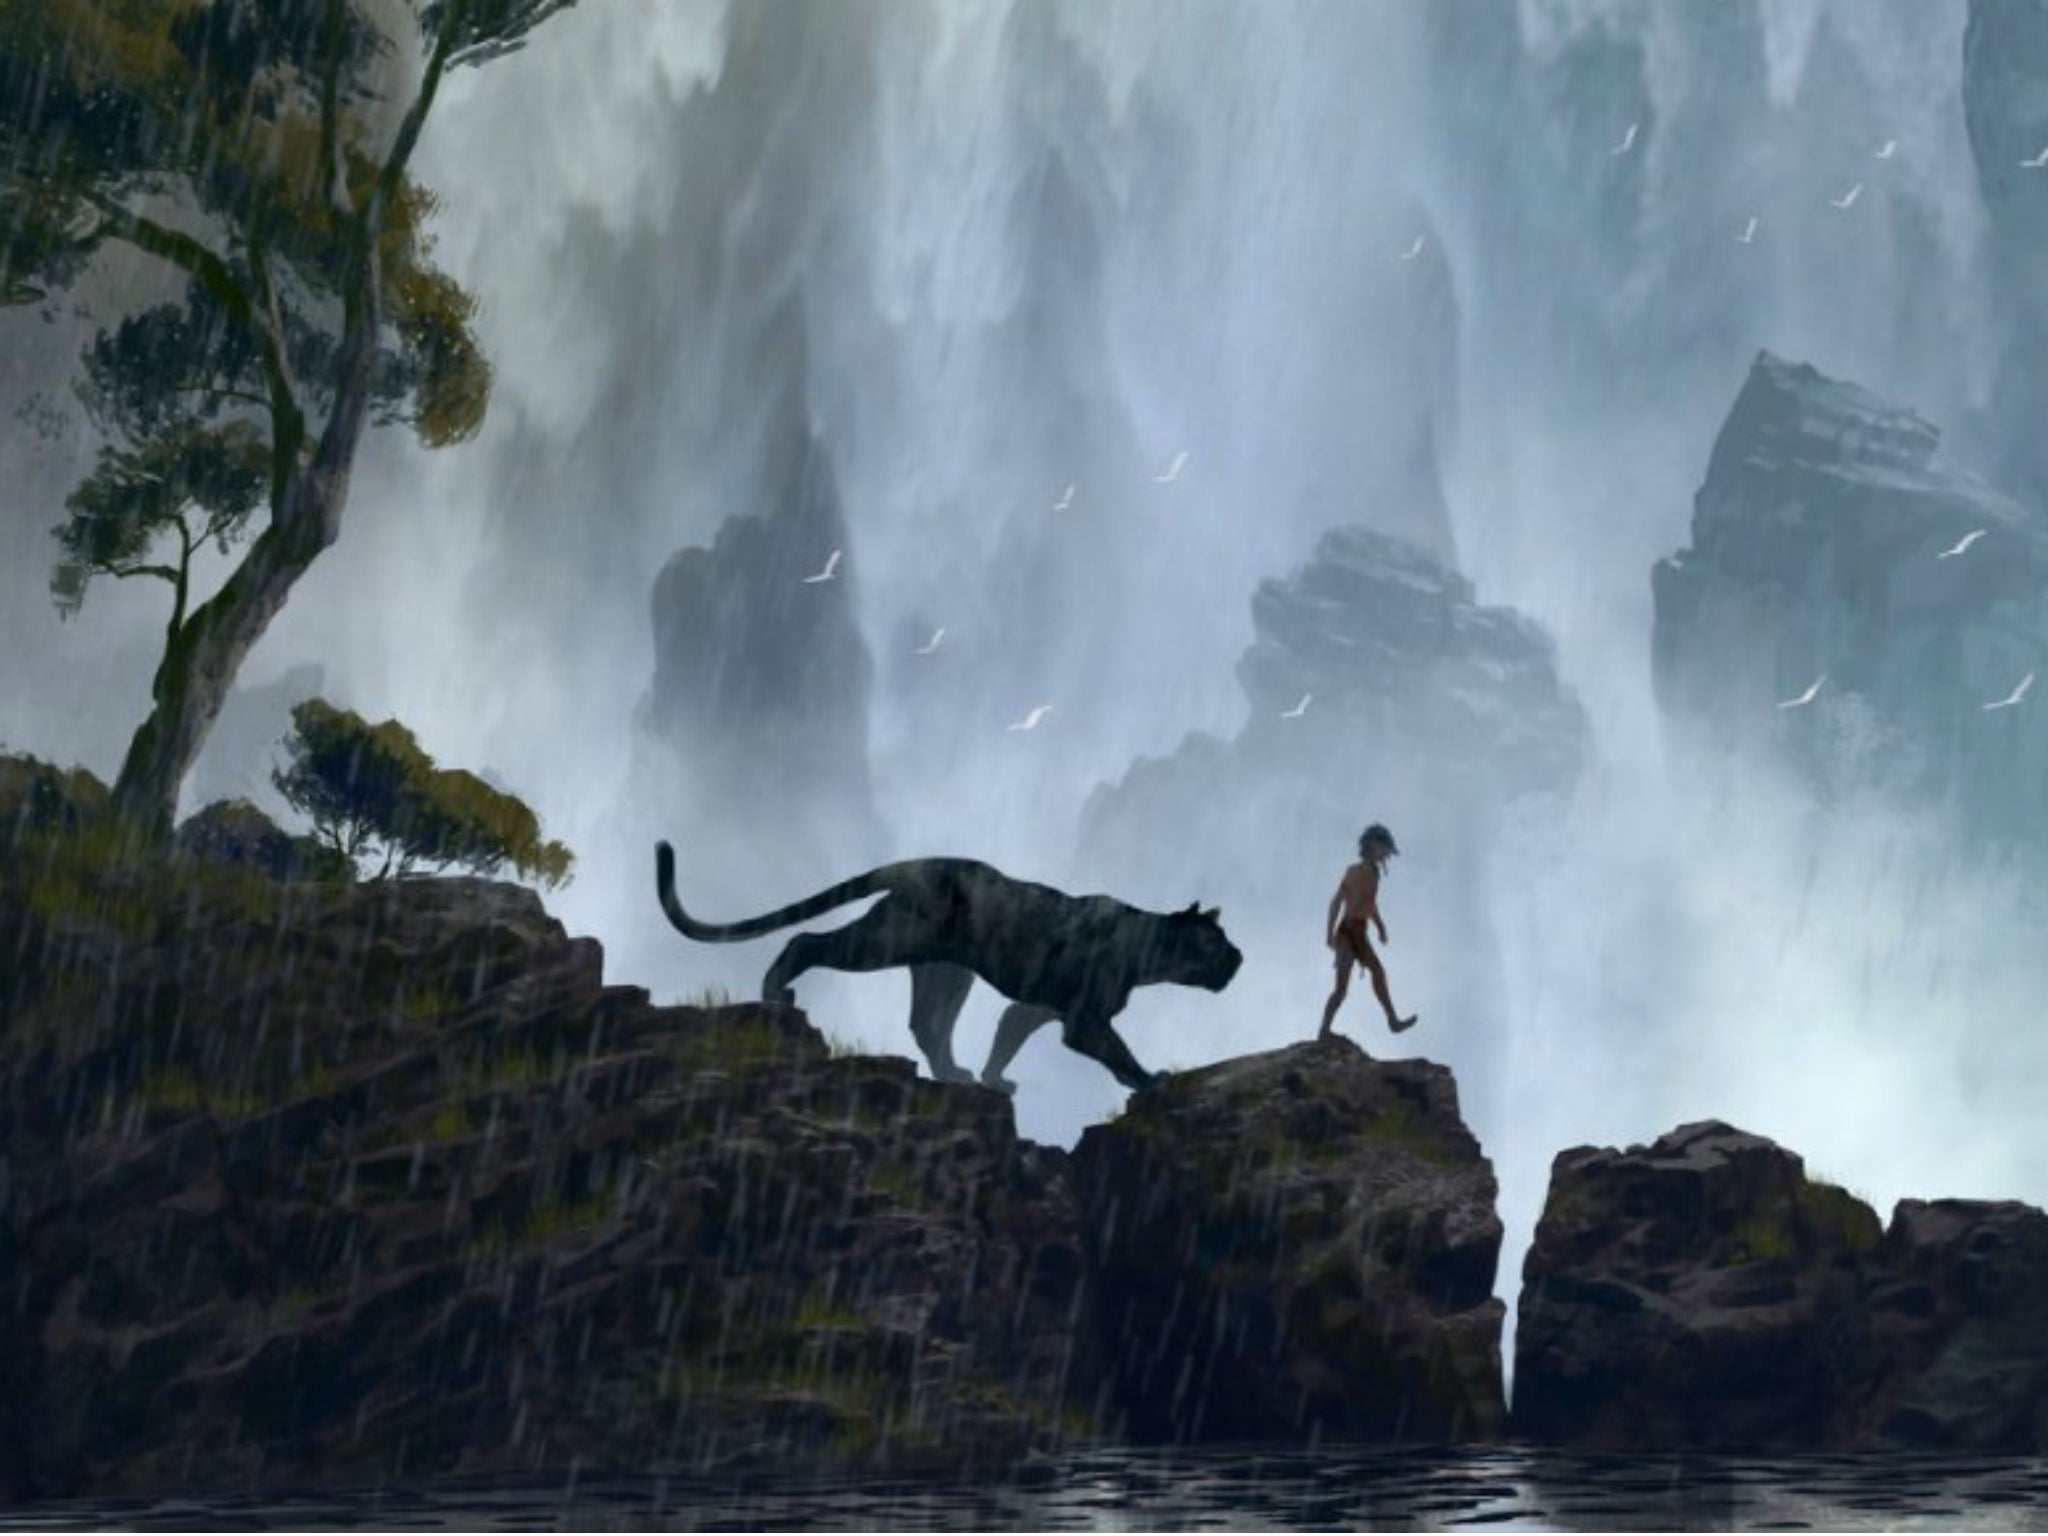 Disney debuts moody The Jungle Book teaser ahead of first trailer ...: www.independent.co.uk/arts-entertainment/films/news/disney-debuts...